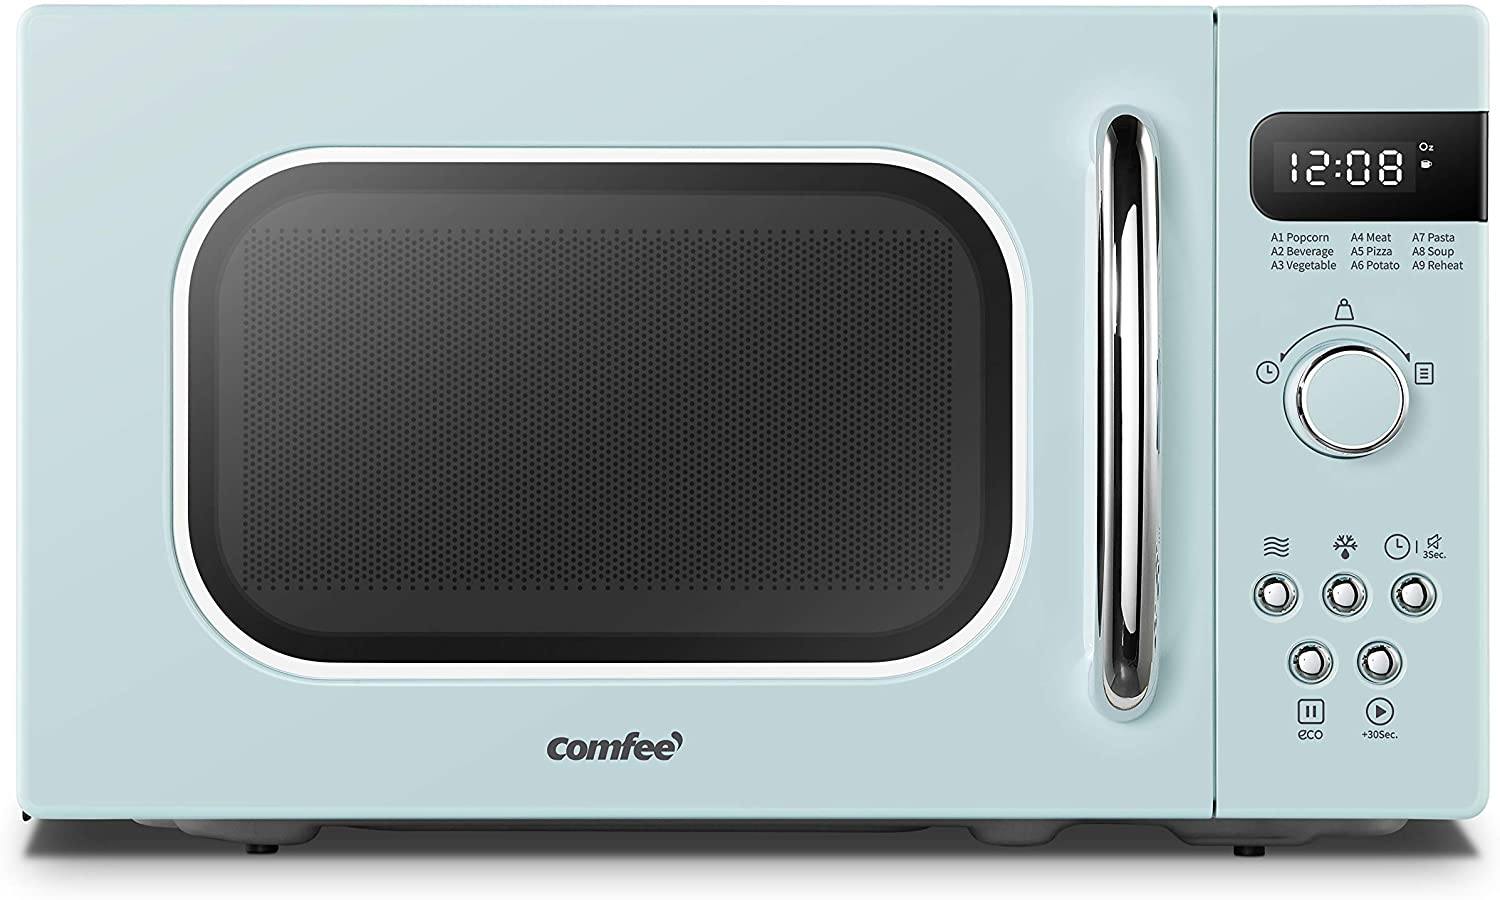 COMFEE' AM720C2RA-G Retro Countertop Microwave Review